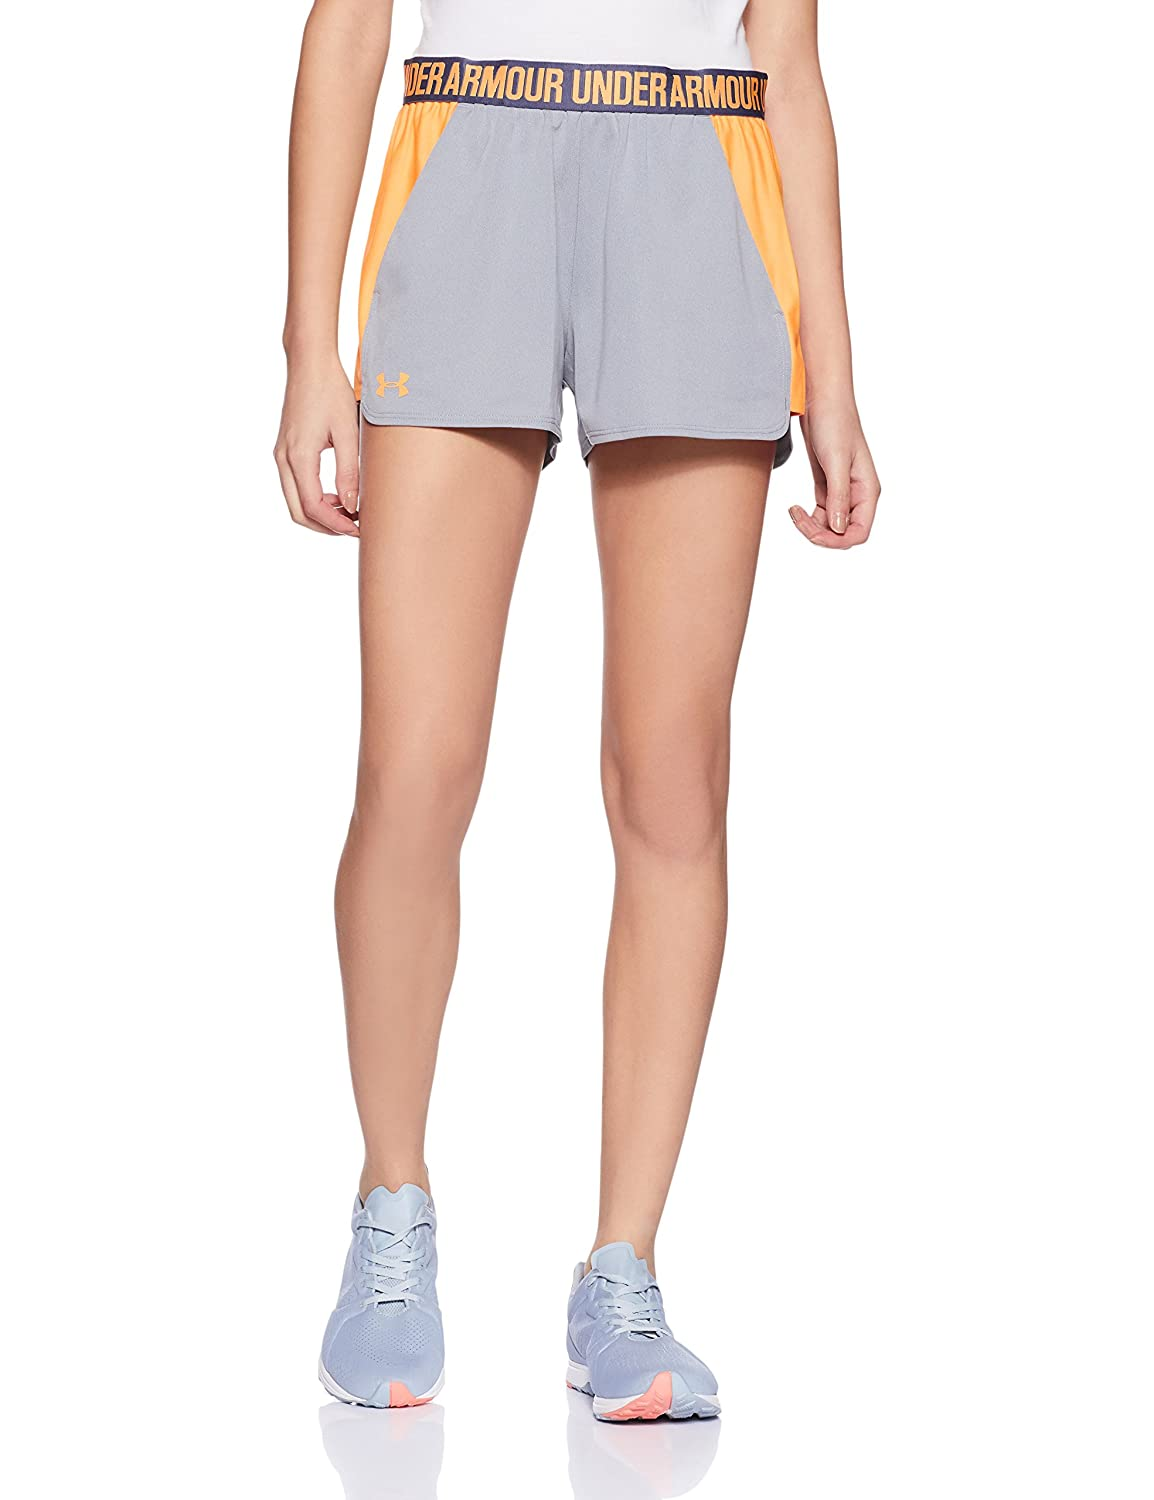 (アンダーアーマー) UNDER ARMOUR プレイアップショーツ(トレーニング/ショートパンツ/WOMEN)[1292231] B01M8KU3KG Small|True Gray Heather/Orange Peel True Gray Heather/Orange Peel Small